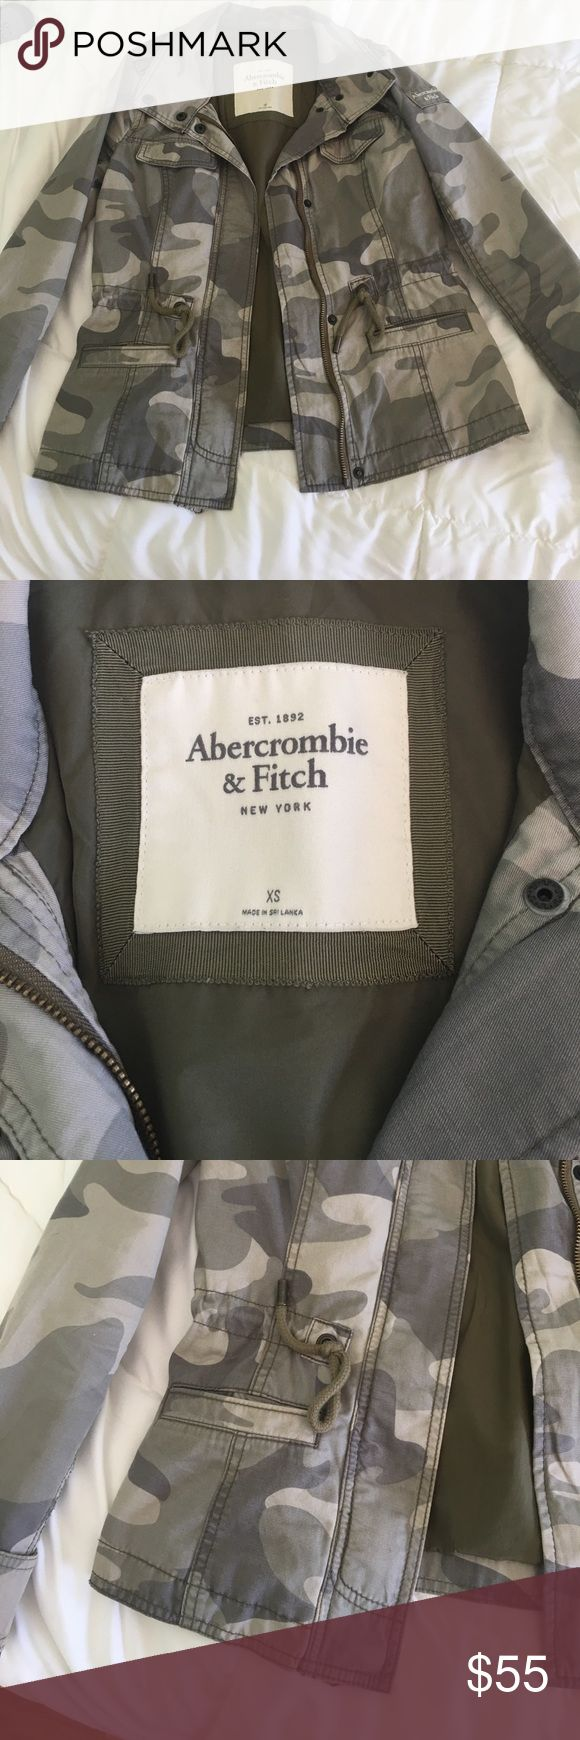 Abercrombie And Fitch Jacket Gently used jacket that is great for fall. Can be worn dresses down or up with a pair of boots. No stains or damage that I can see Abercrombie & Fitch Jackets & Coats